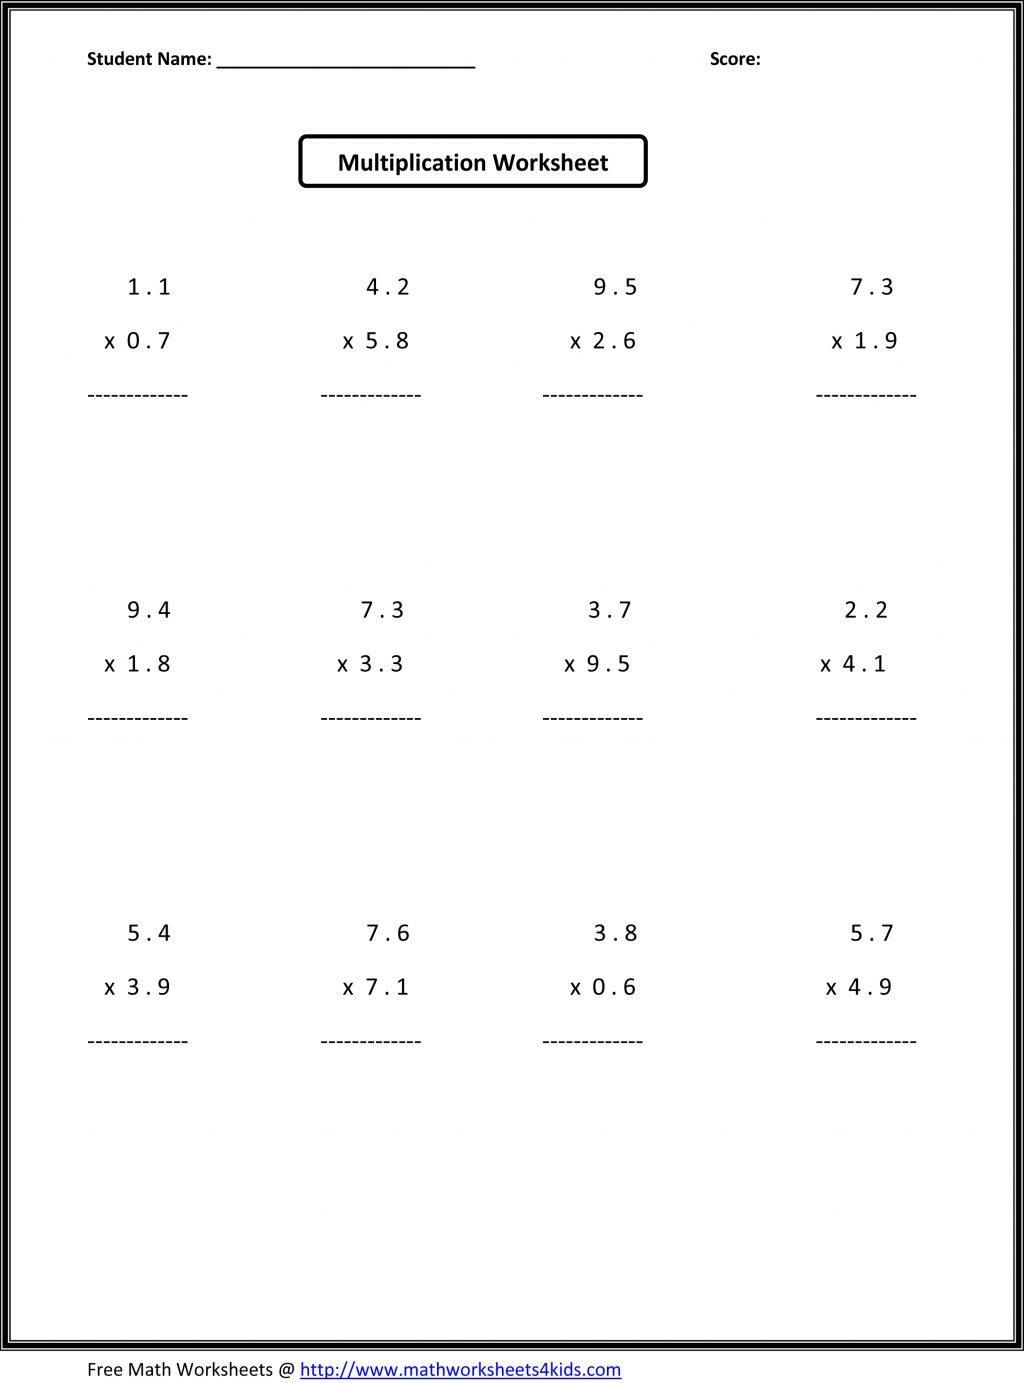 6th Grade Printable Math Worksheets In